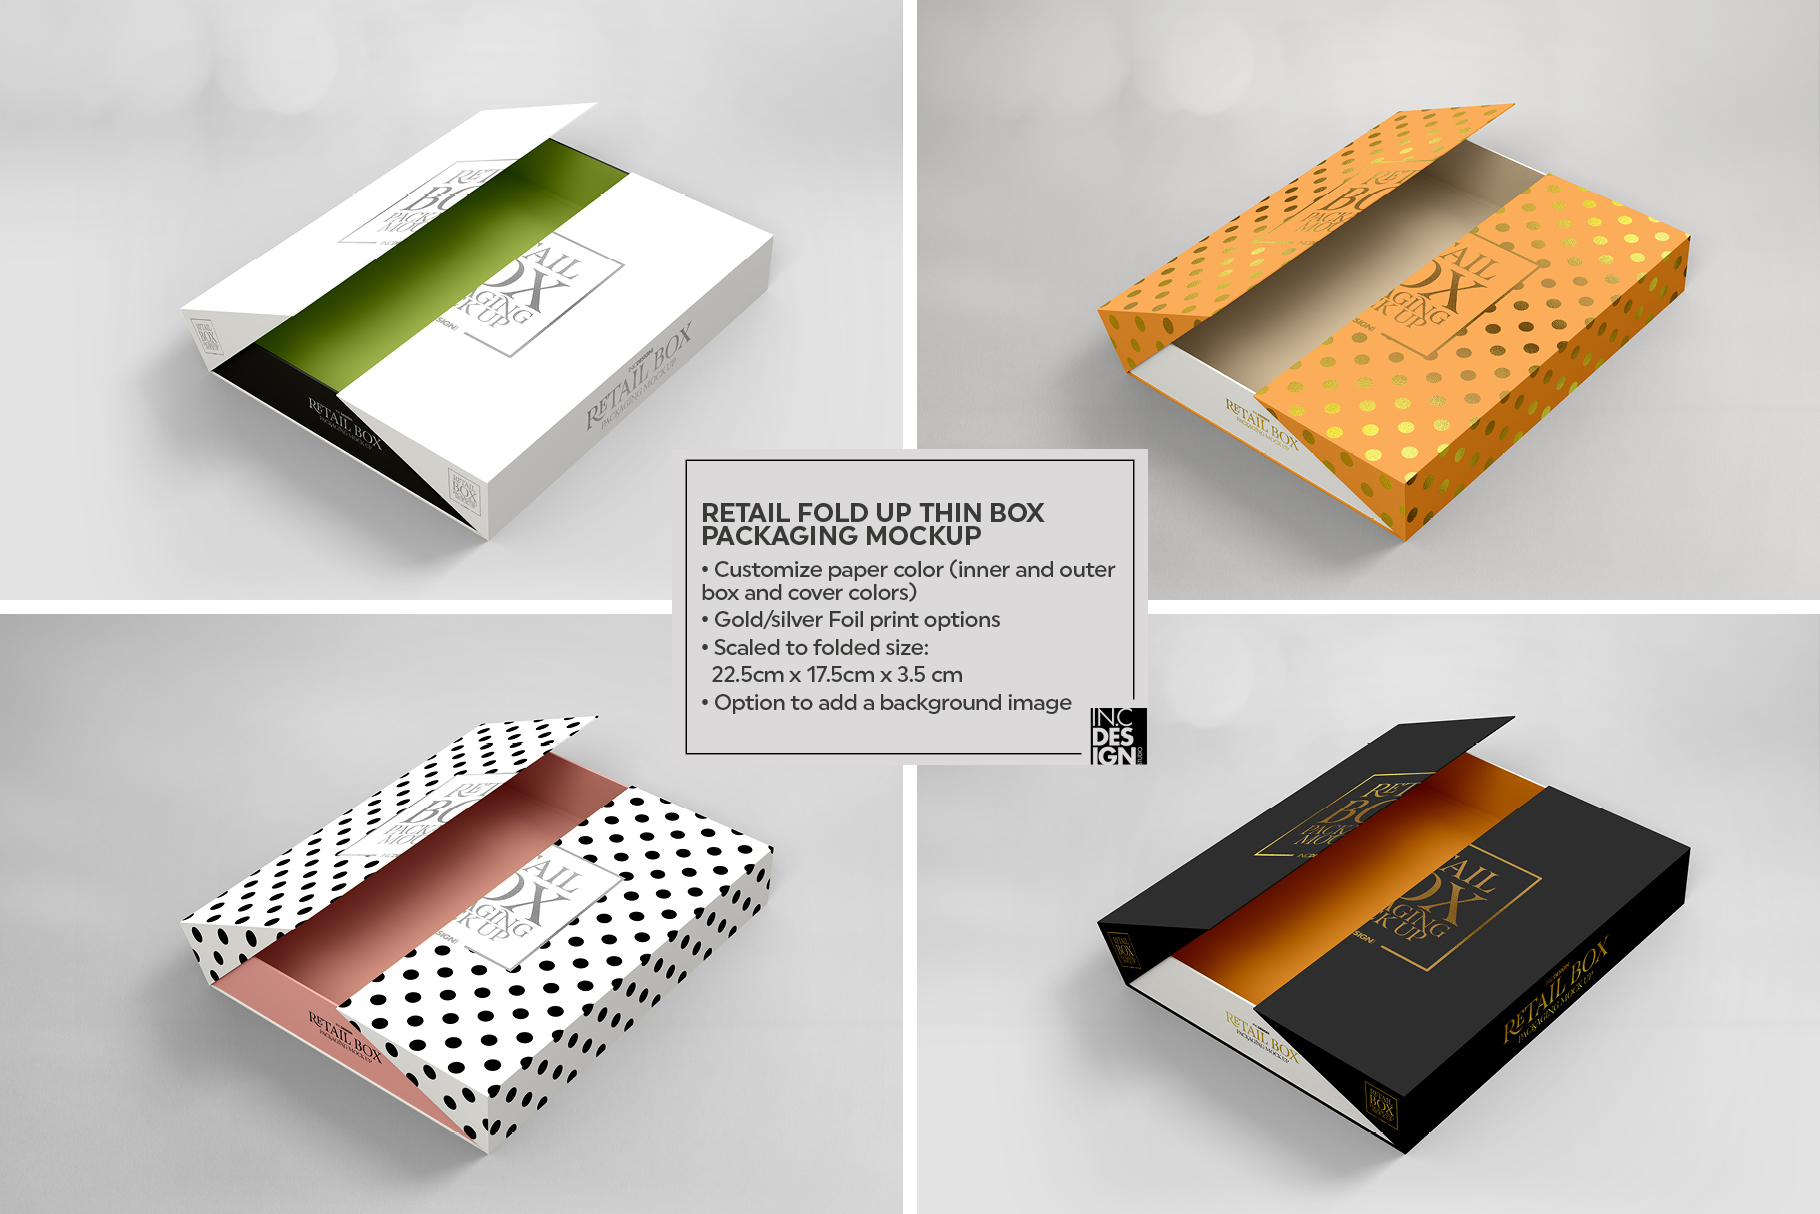 Fold Up Retail Thin Box Packaging Mockup example image 2